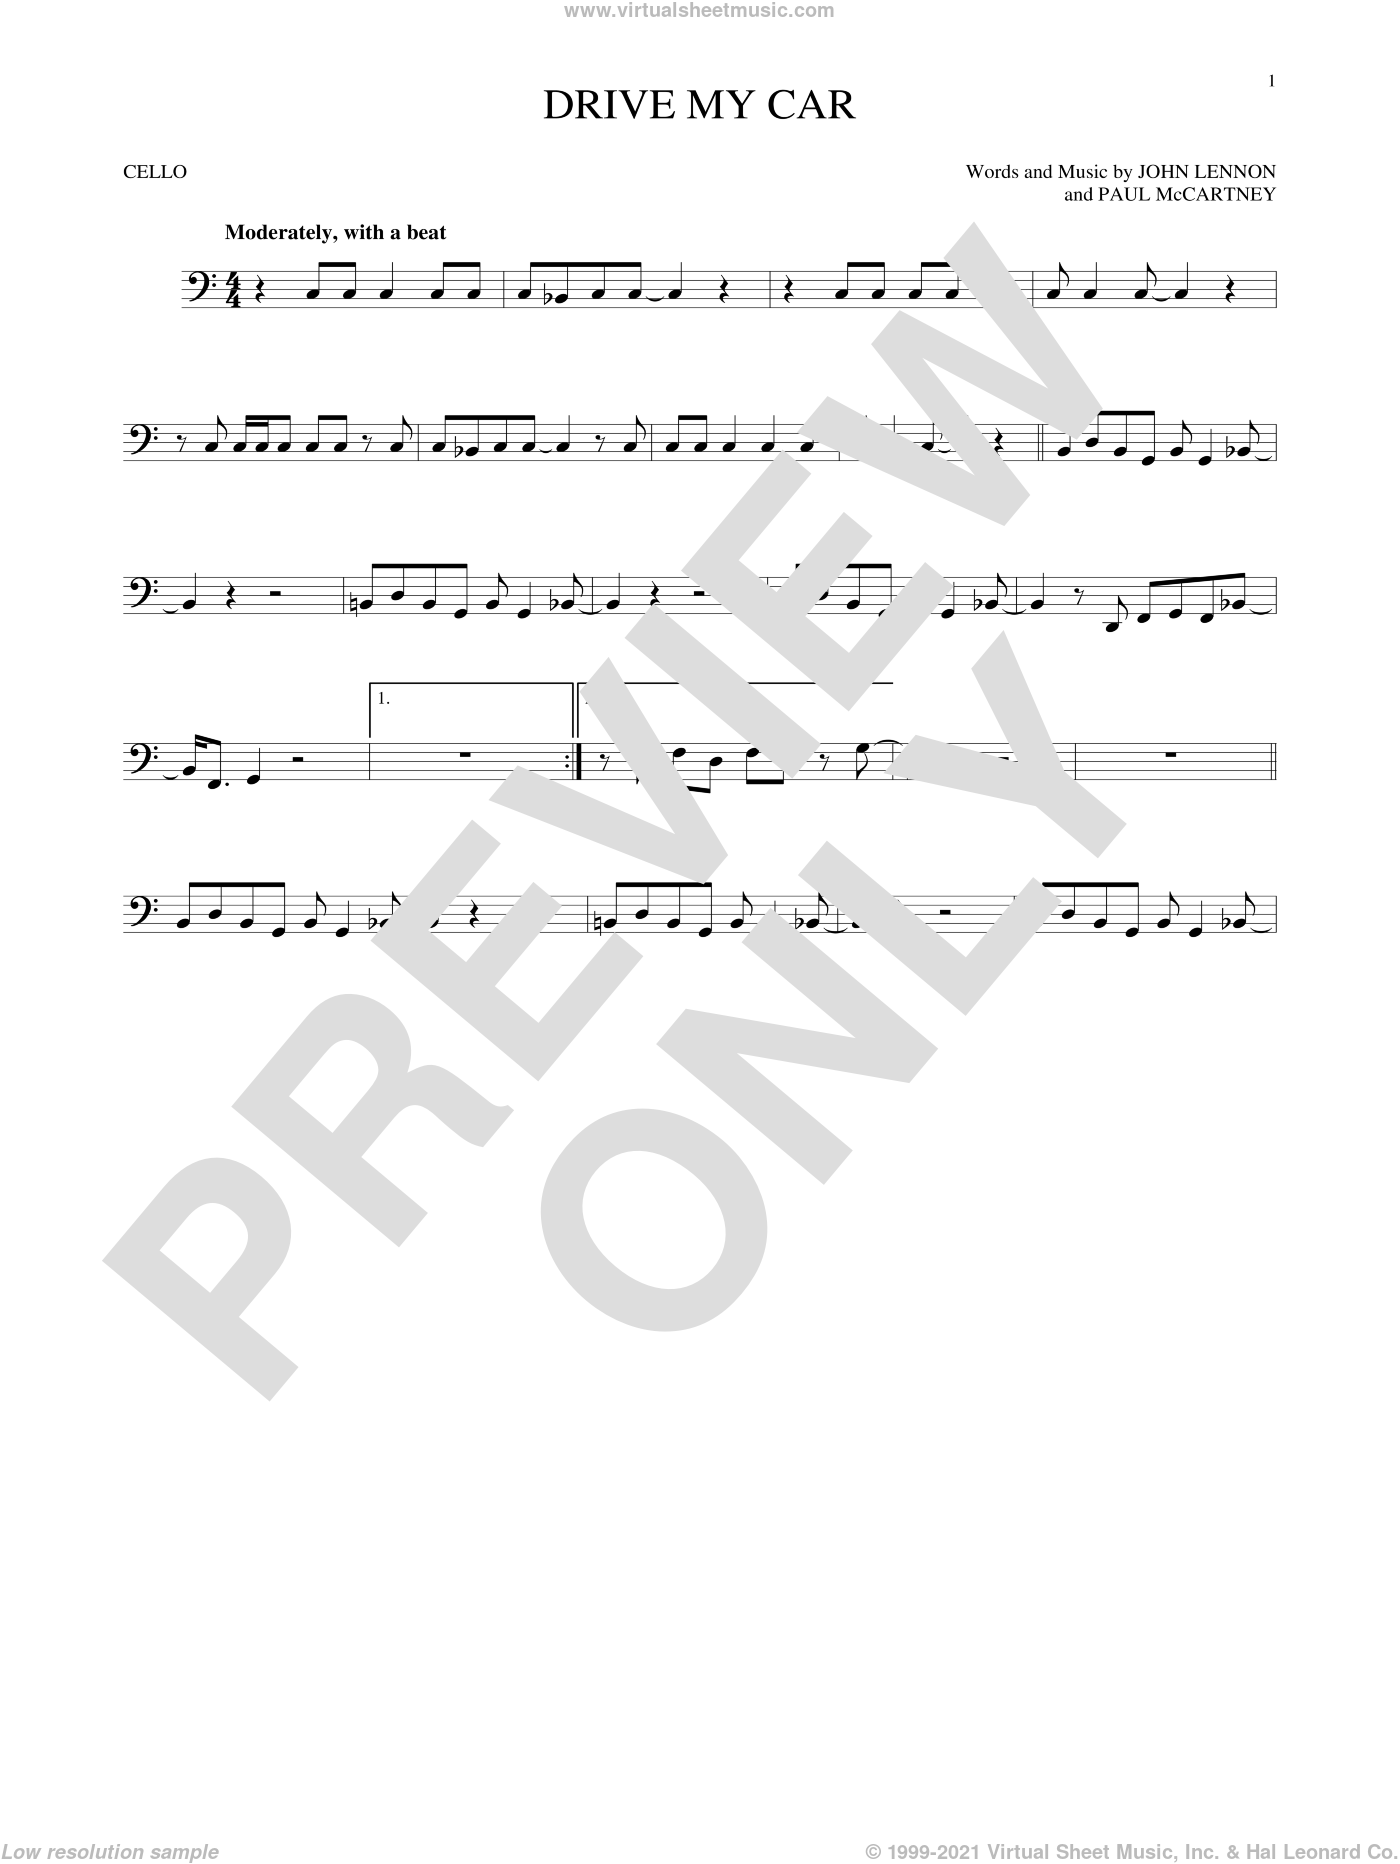 Drive My Car sheet music for cello solo by The Beatles, John Lennon and Paul McCartney, intermediate skill level